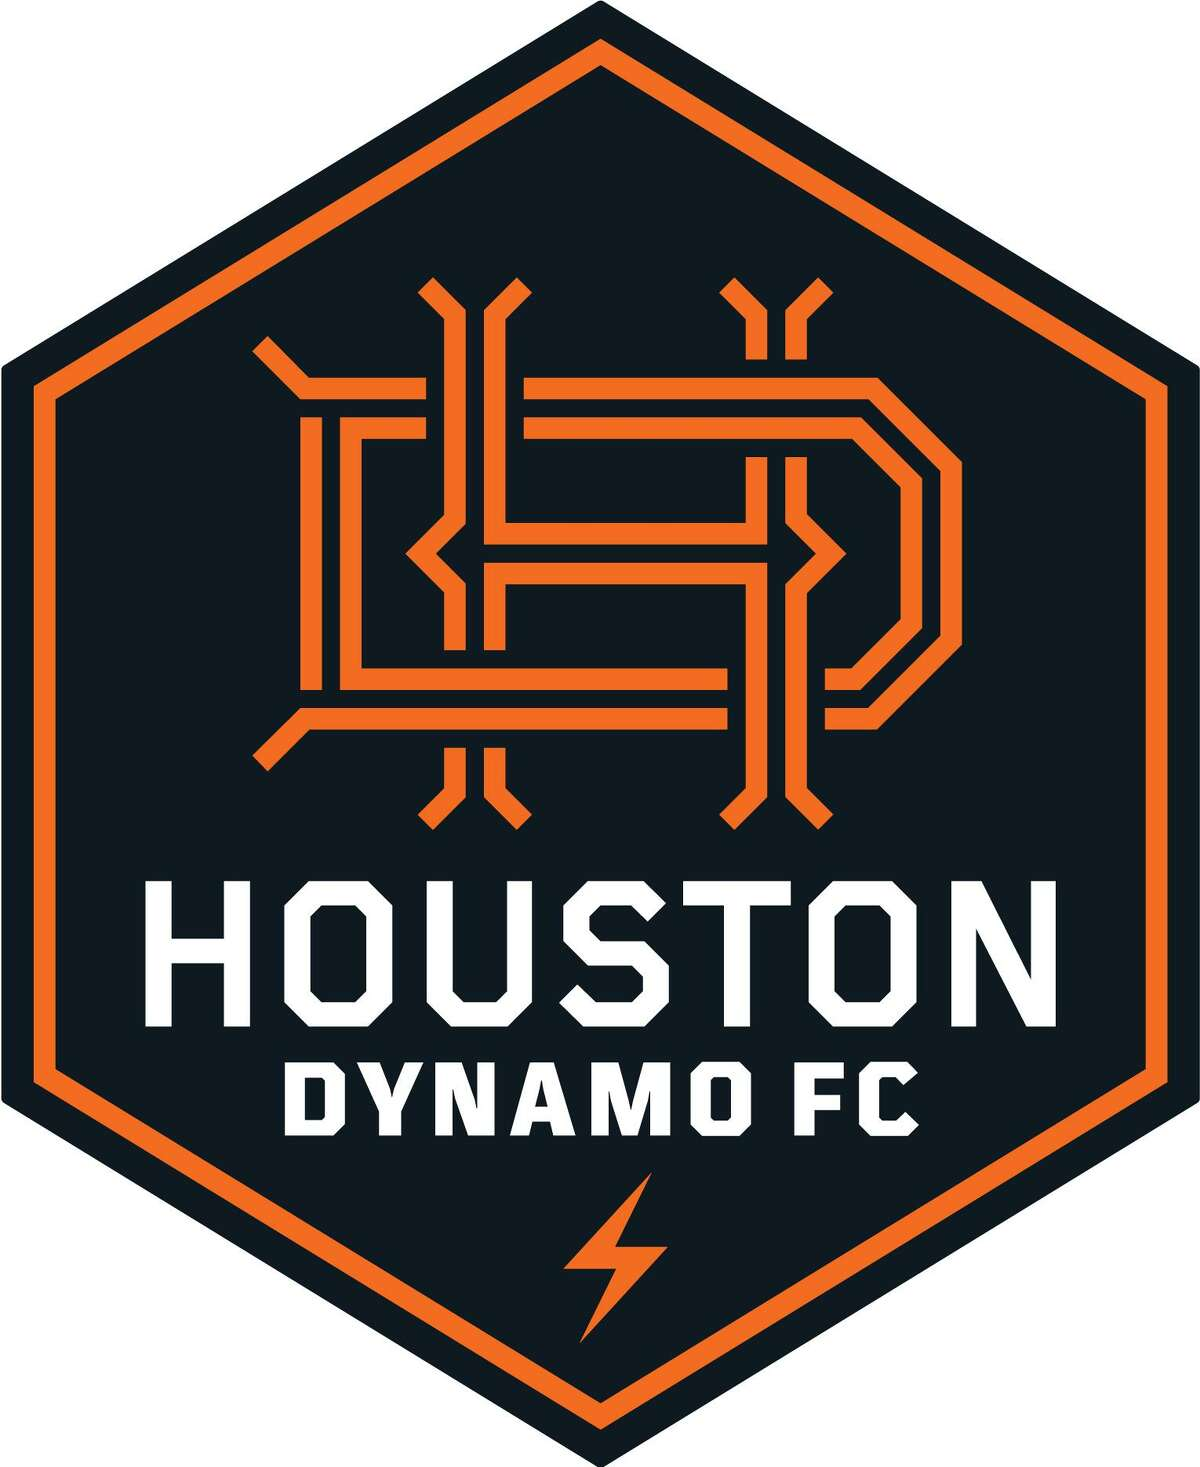 Houston Dynamo FC and its new logo and branding.